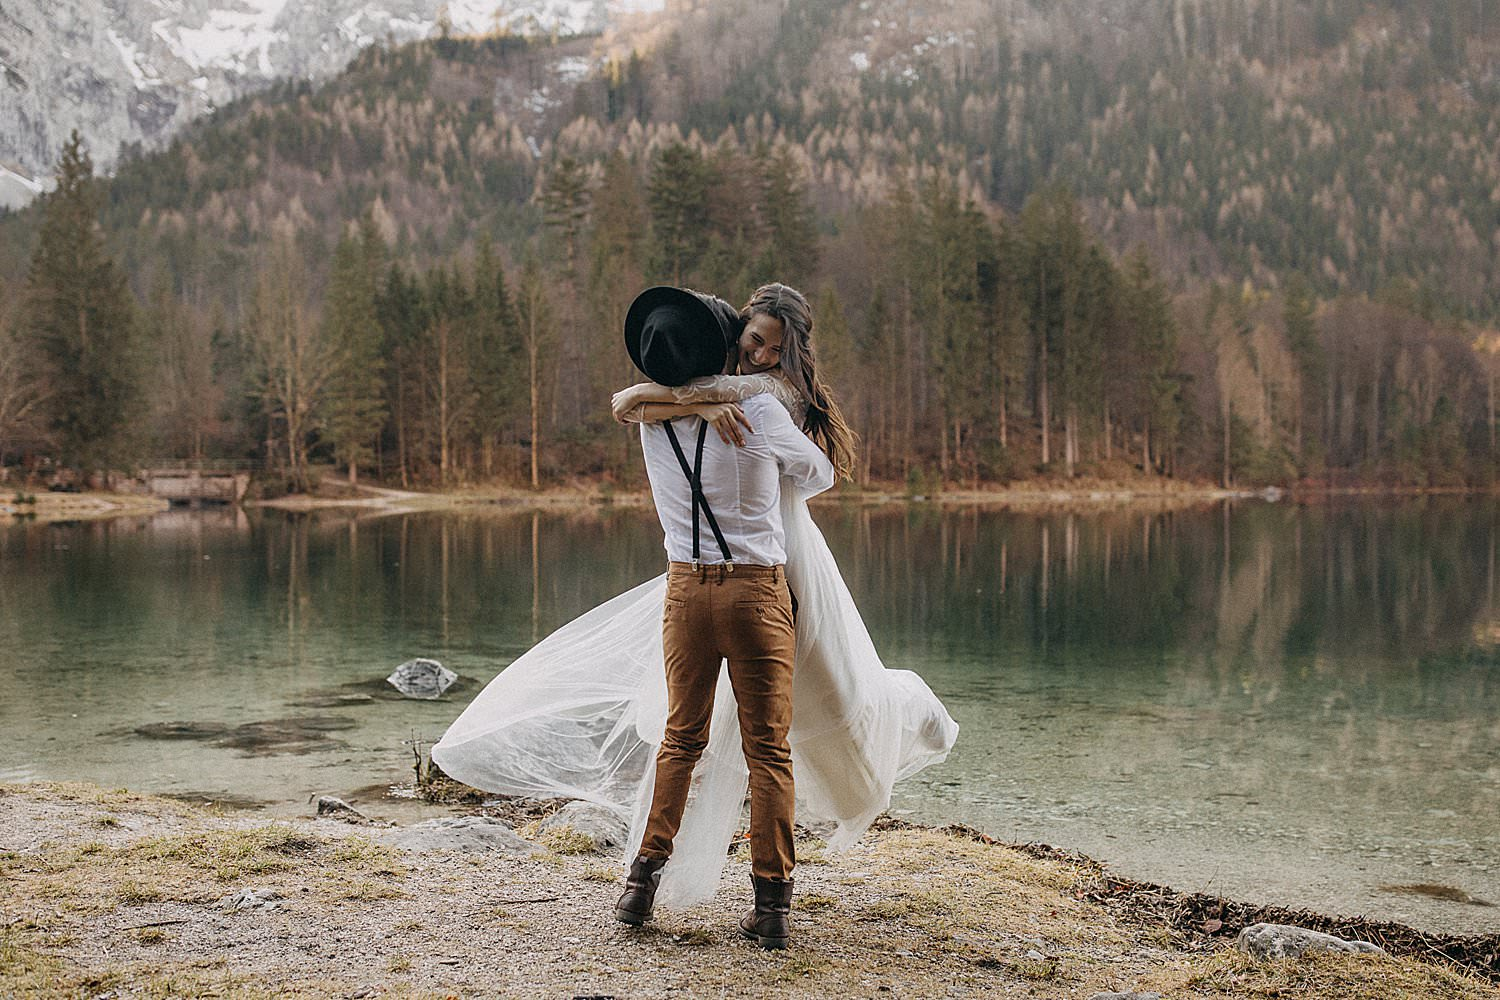 Destination wedding lake Austria Langbathsee